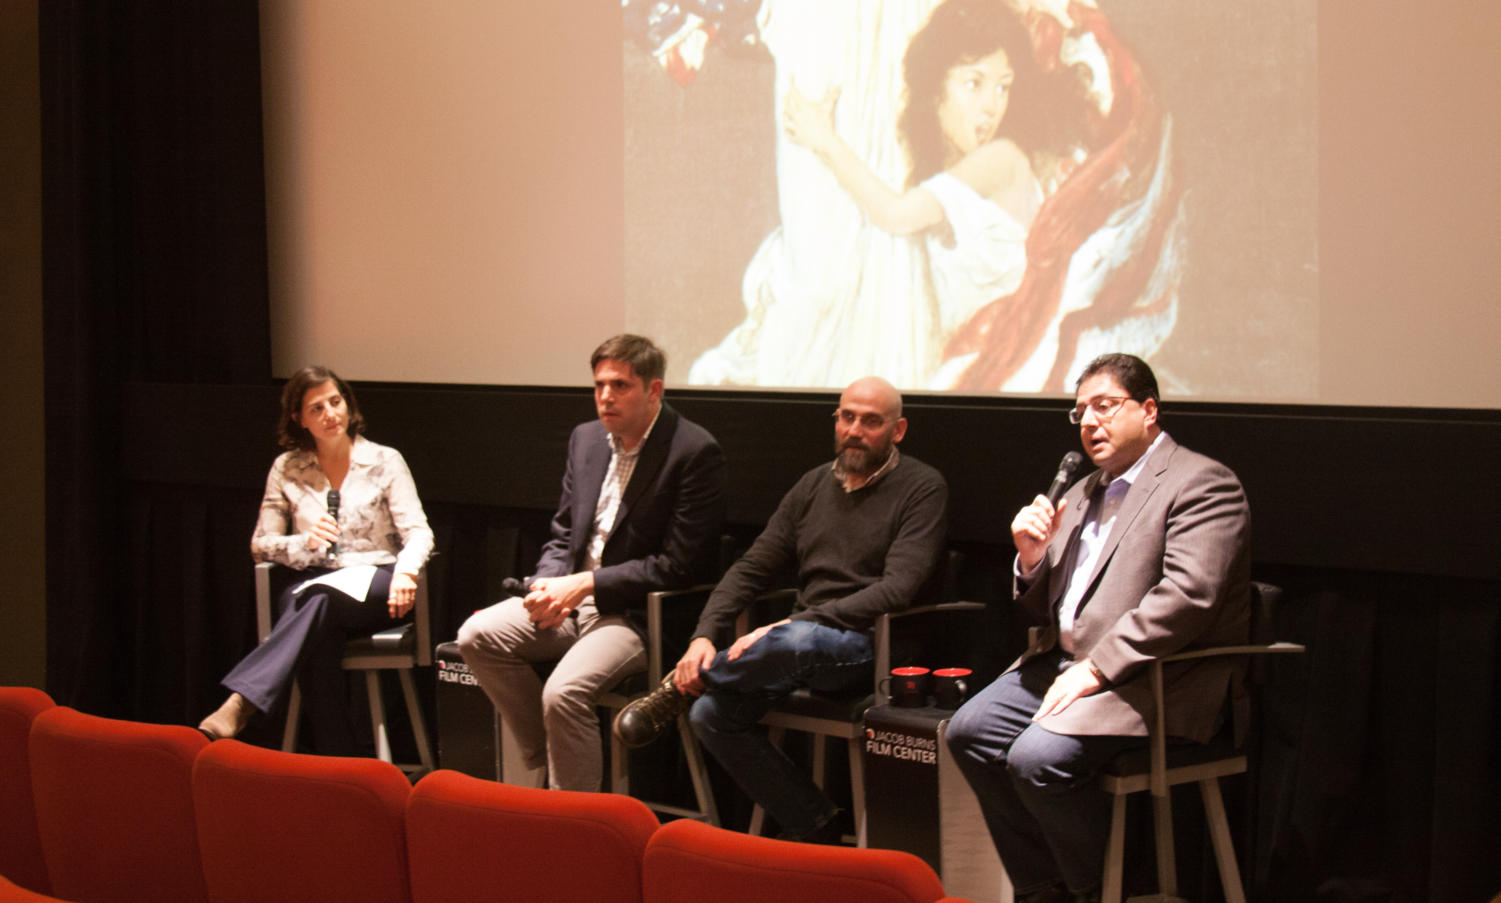 A panel gathered at The Jacob Burns Film Center to discuss the Armenian Genocide. Photo by Jack Fozard